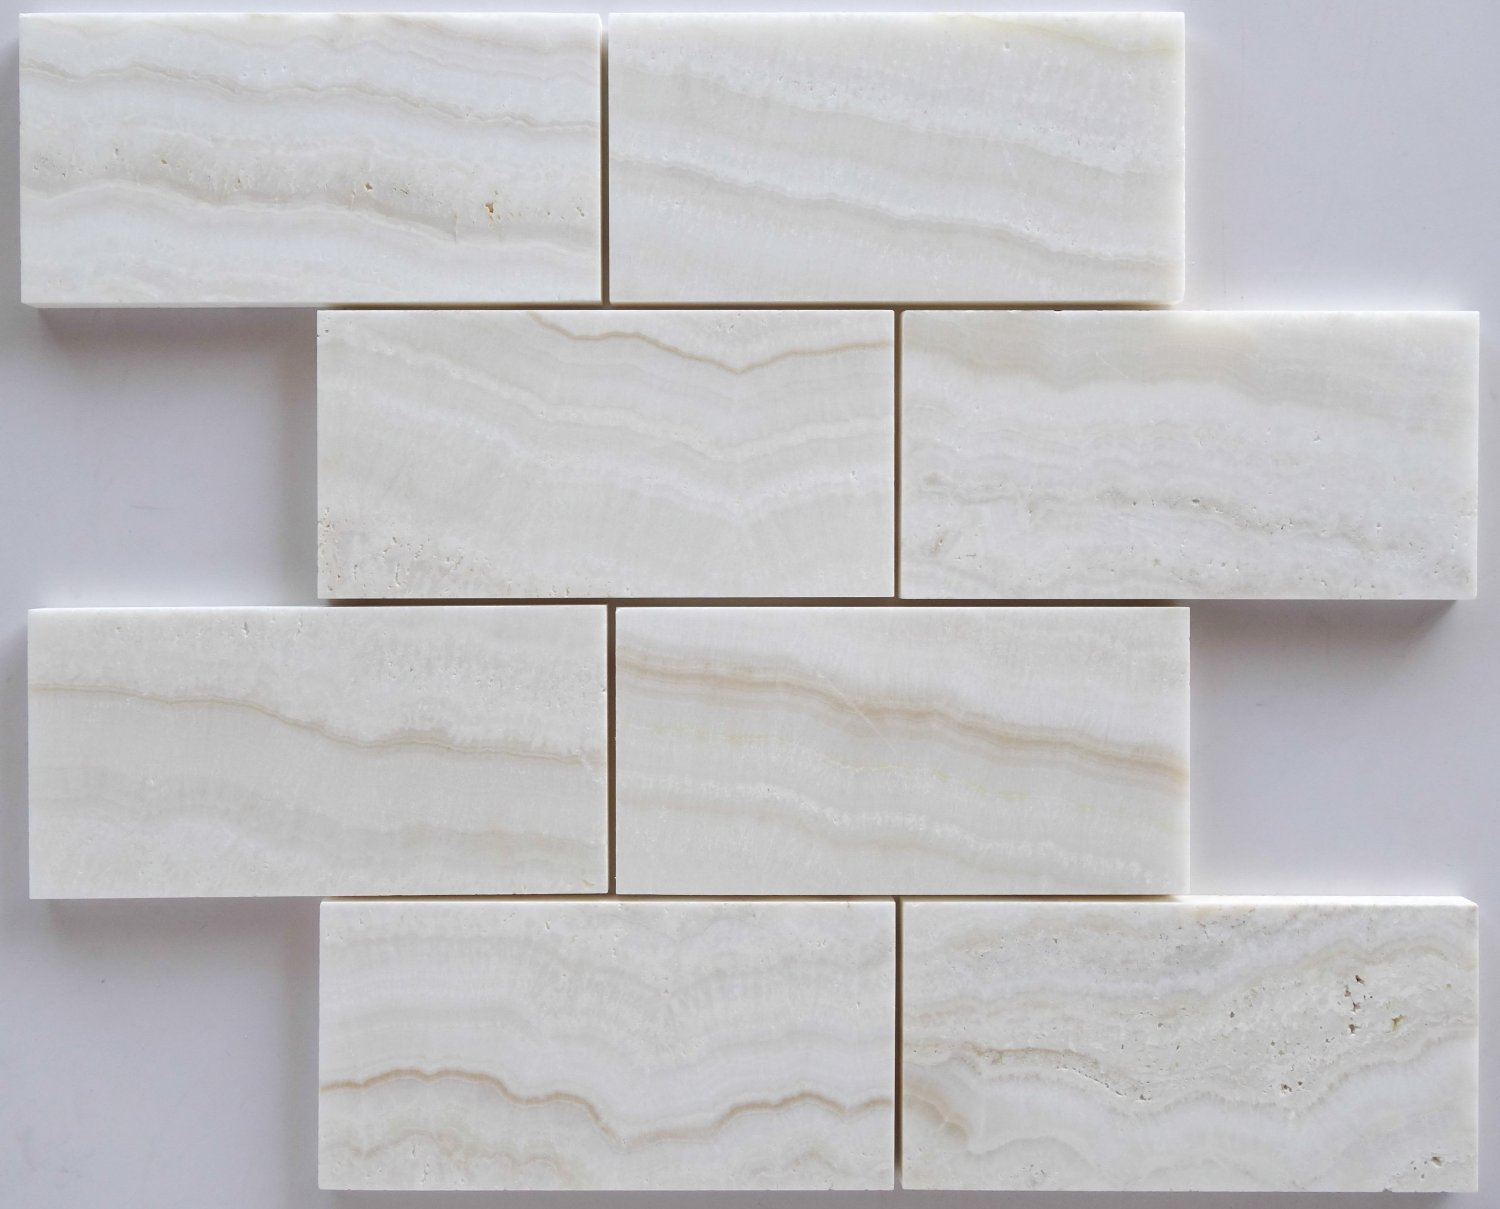 Onyx Tile | The Tile Home Guide